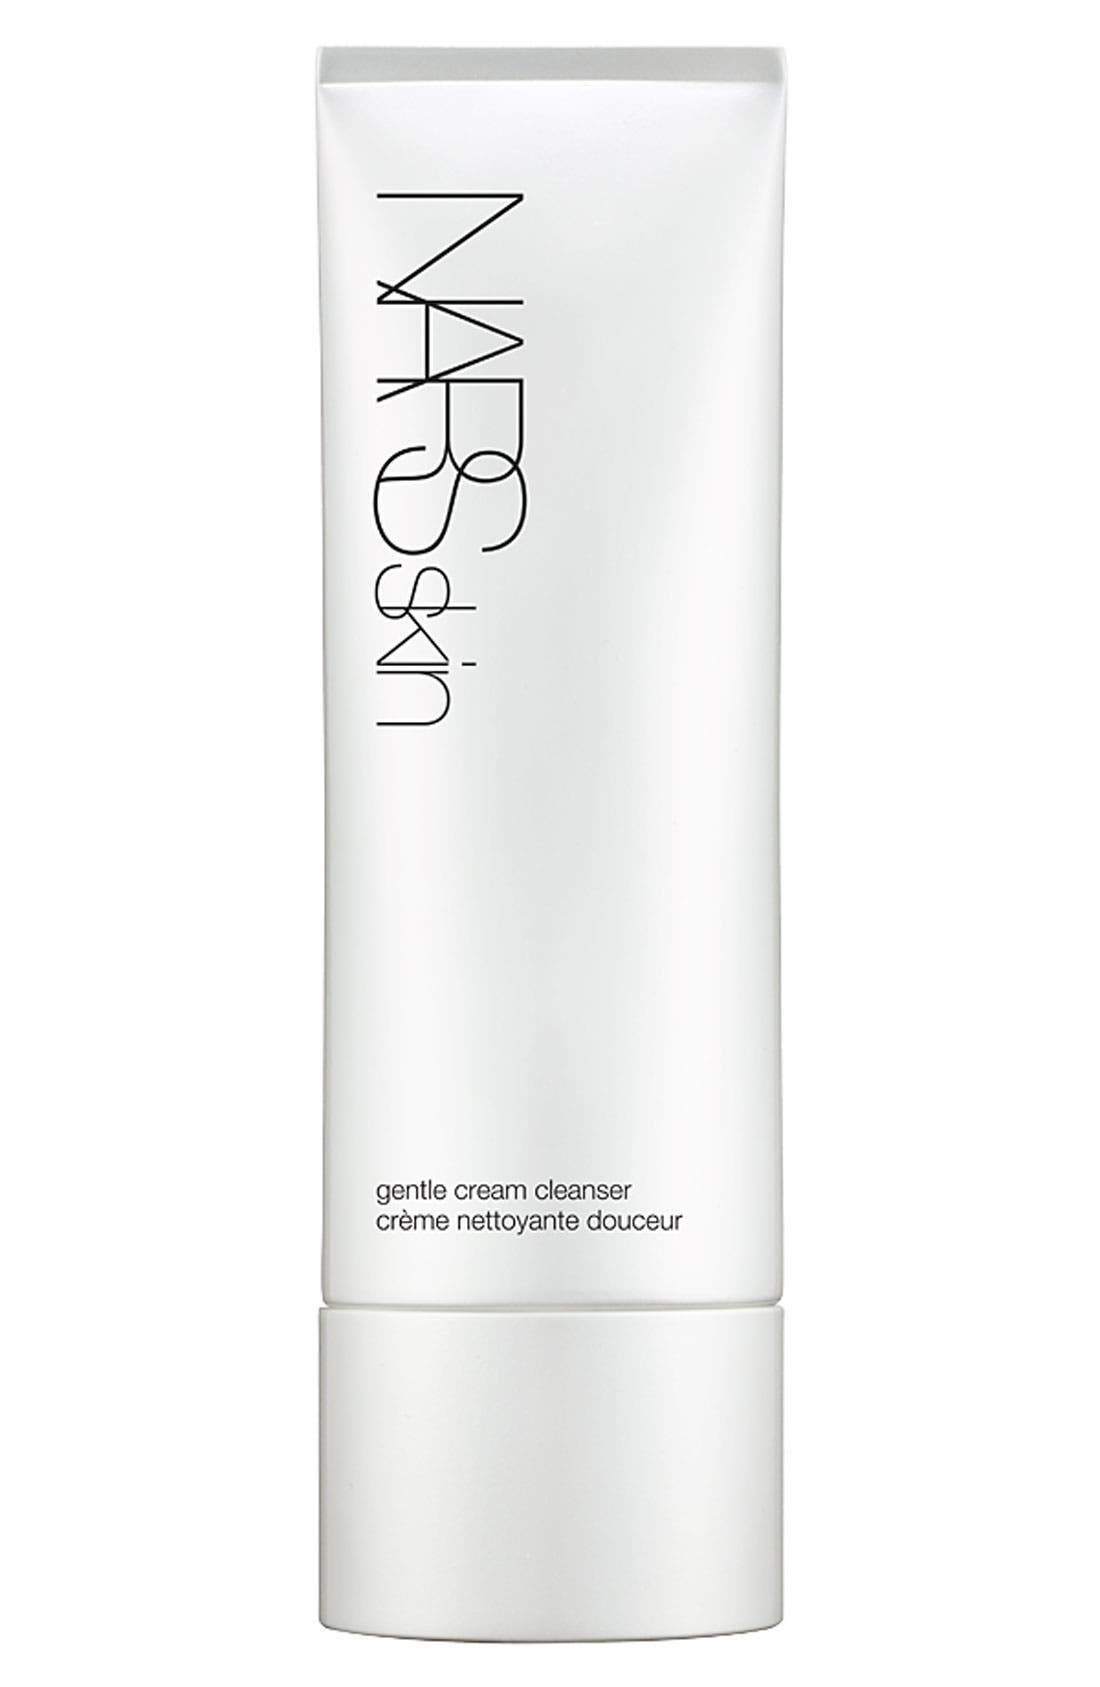 NARS Skin Gentle Cream Cleanser